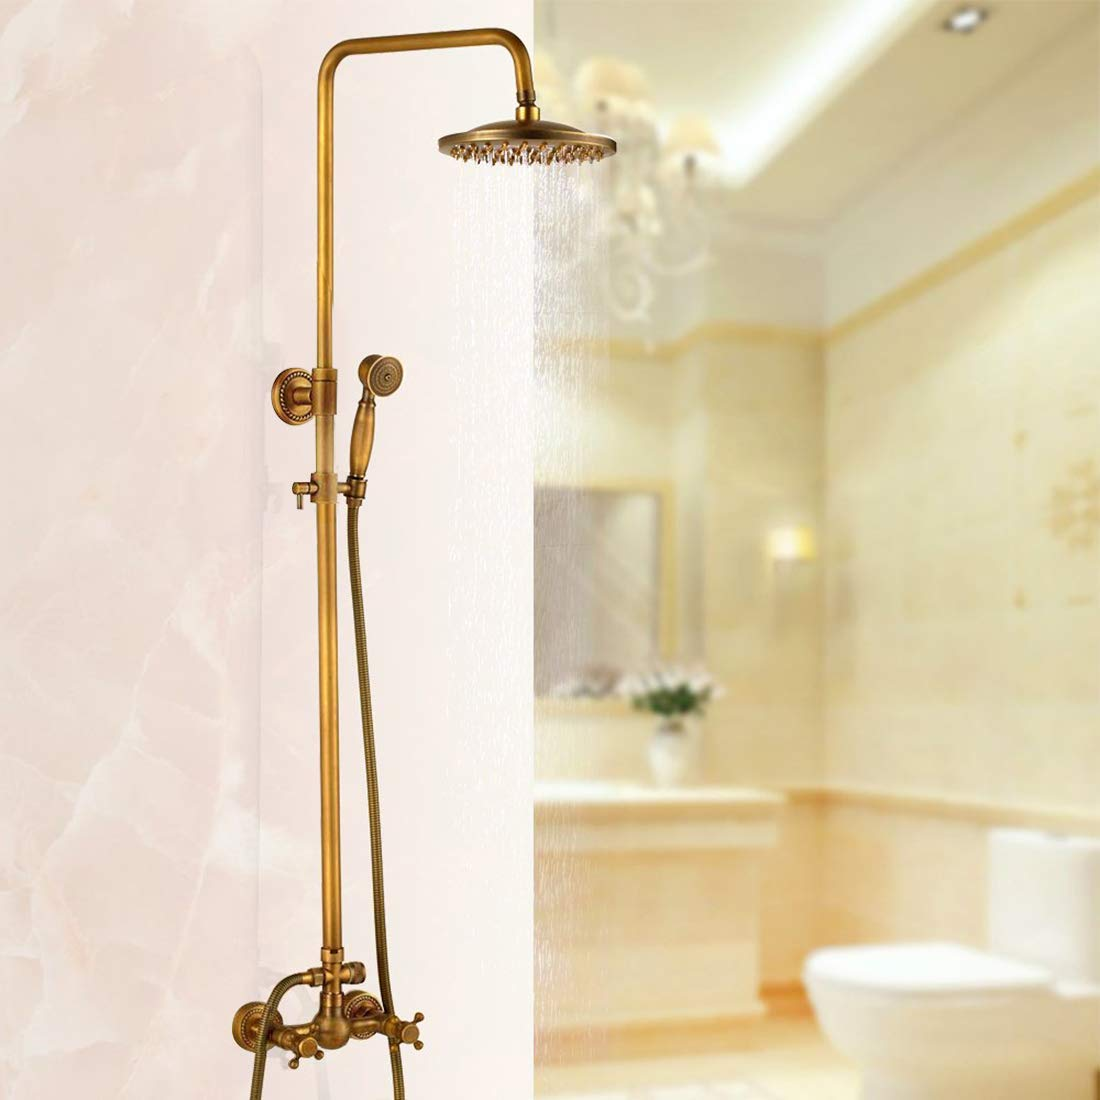 Antique Brass Bathroom Shower Faucet